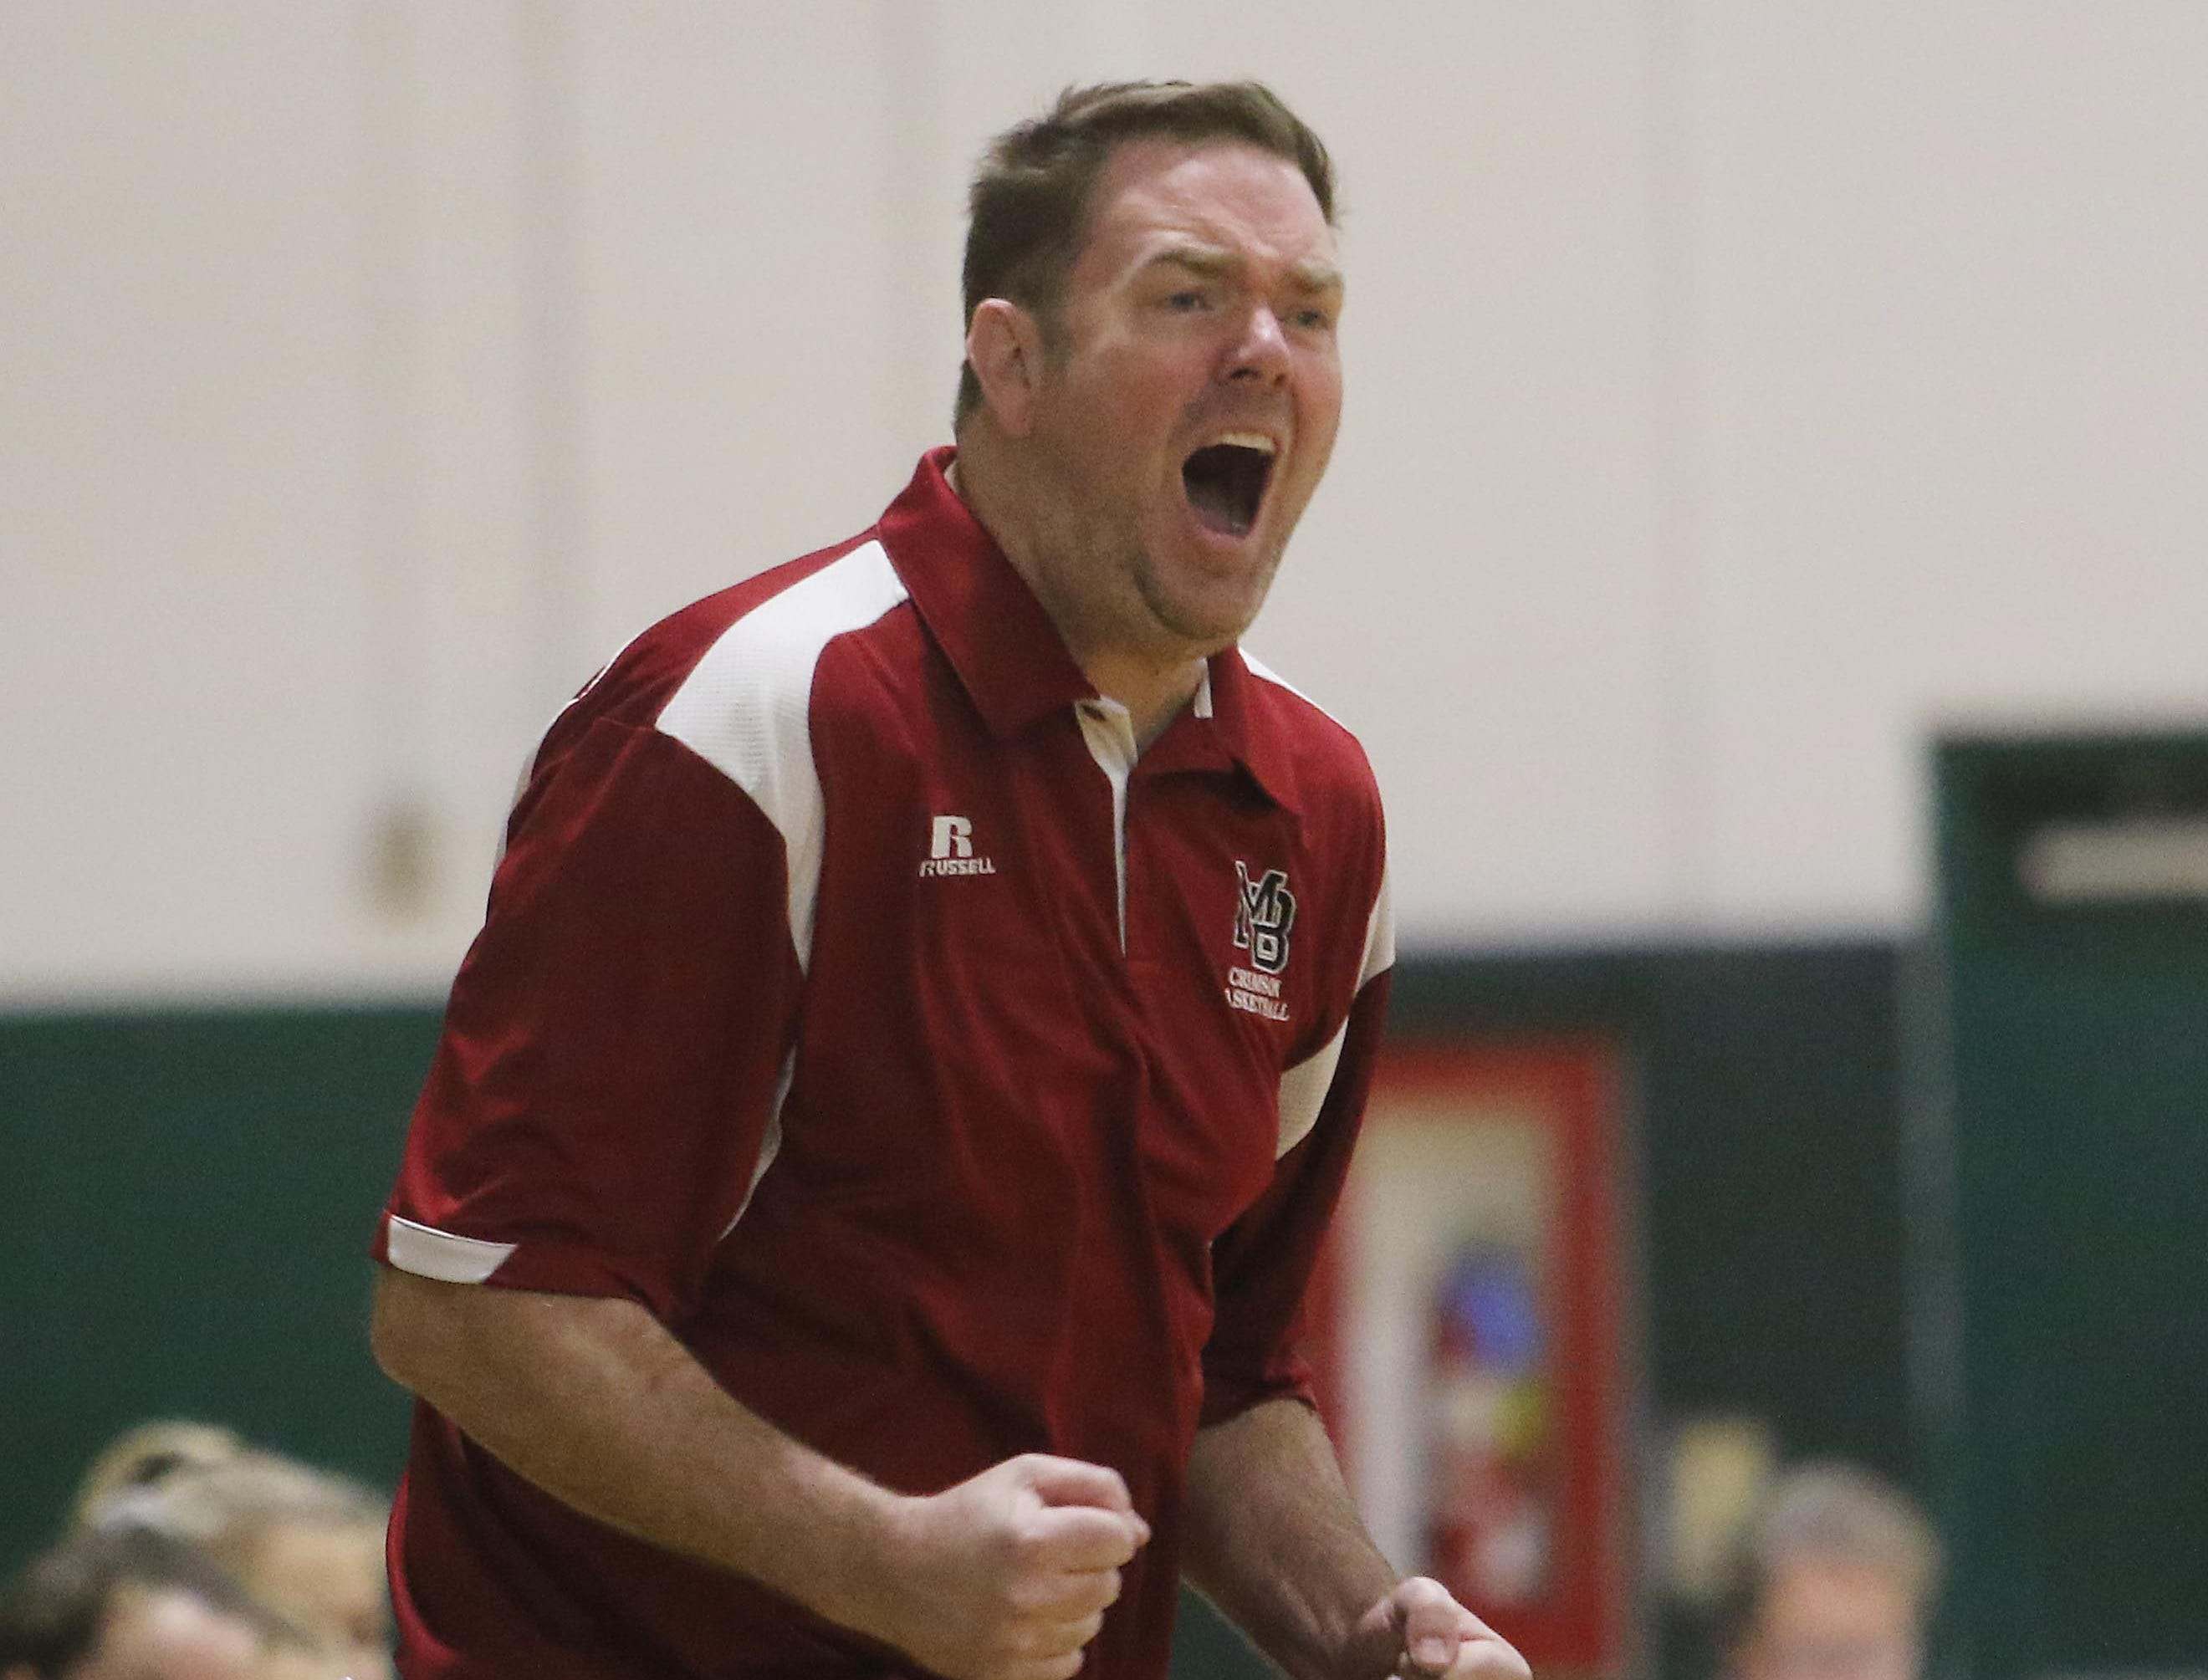 Morristown-Beard coach Mike Sturgeon yells out instructions to his team in the first half.